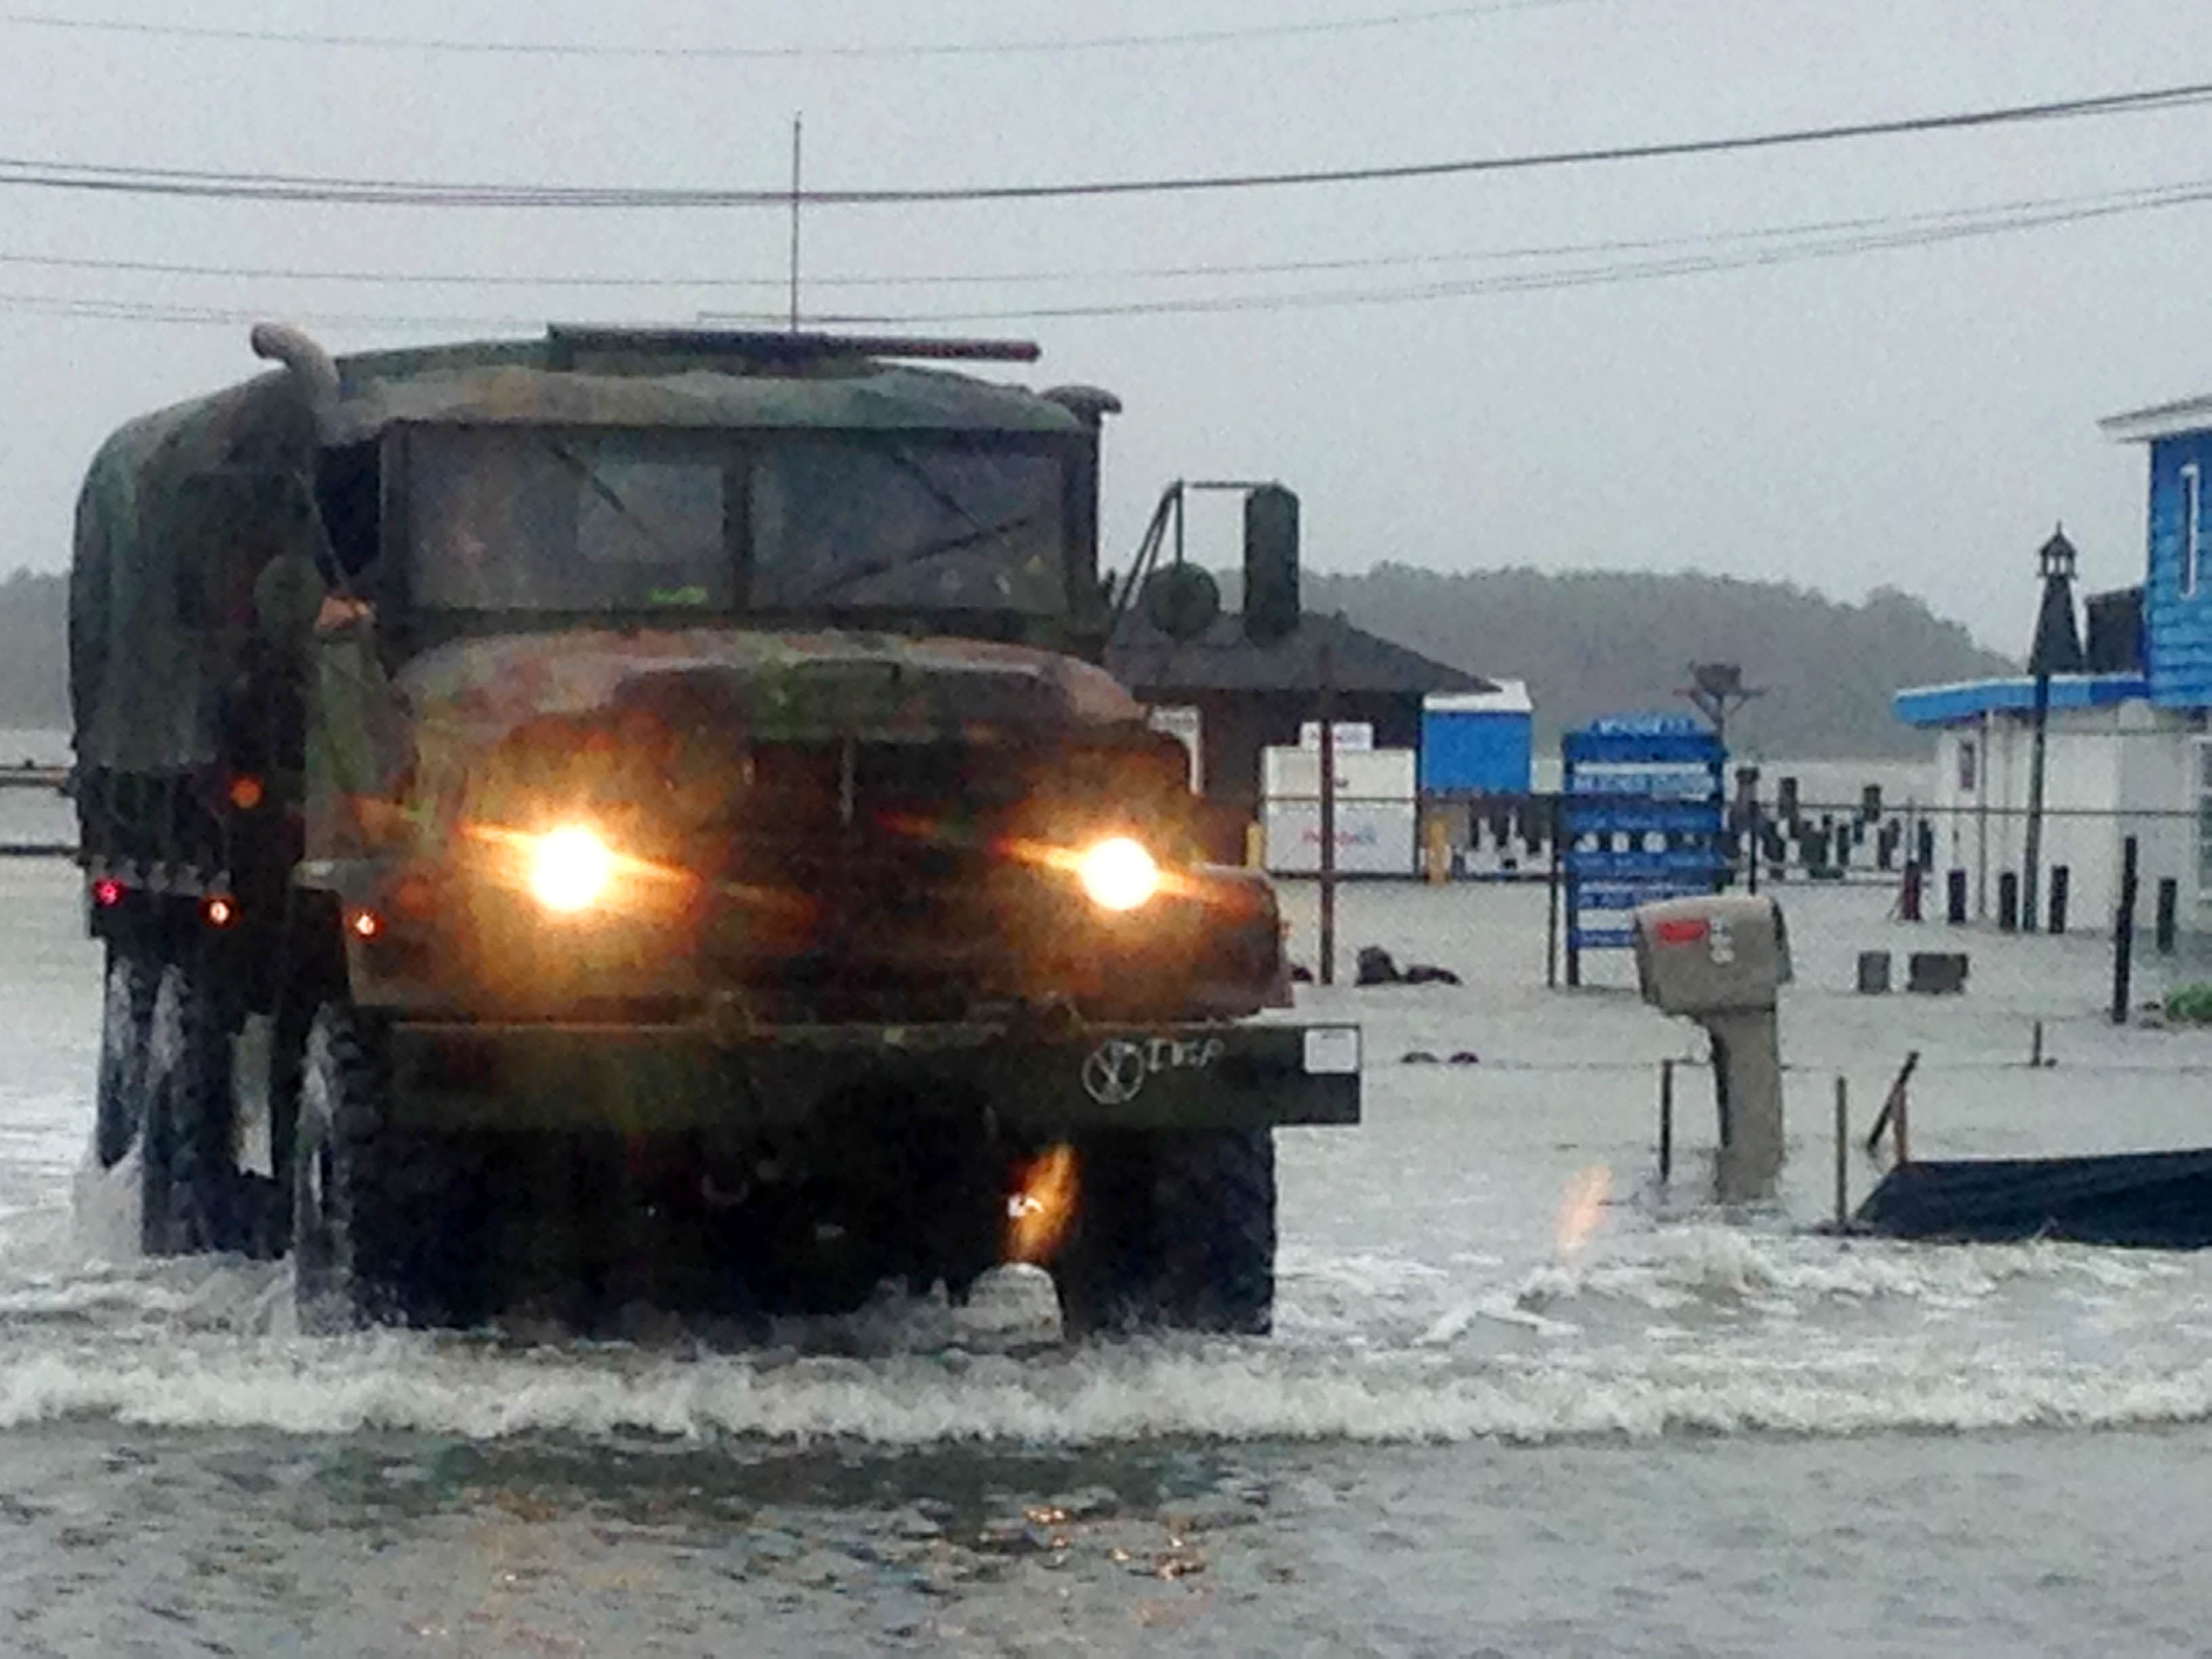 Police patrol flooded streets in a military vehicle in Dewey Beach, Del., on Saturday, Oct. 3, 2015. Tidal flooding from a nor'easter continues to make driving a challenge in the storm-battered resort town of Ocean City, Maryland. Police closed State Route 1, a major artery crossing Indian River Inlet, between the resort towns of Bethany Beach and Dewey Beach. A coastal flood warning and limited state of emergency remain in effect for Sussex County. (AP Photo/Randall Chase)